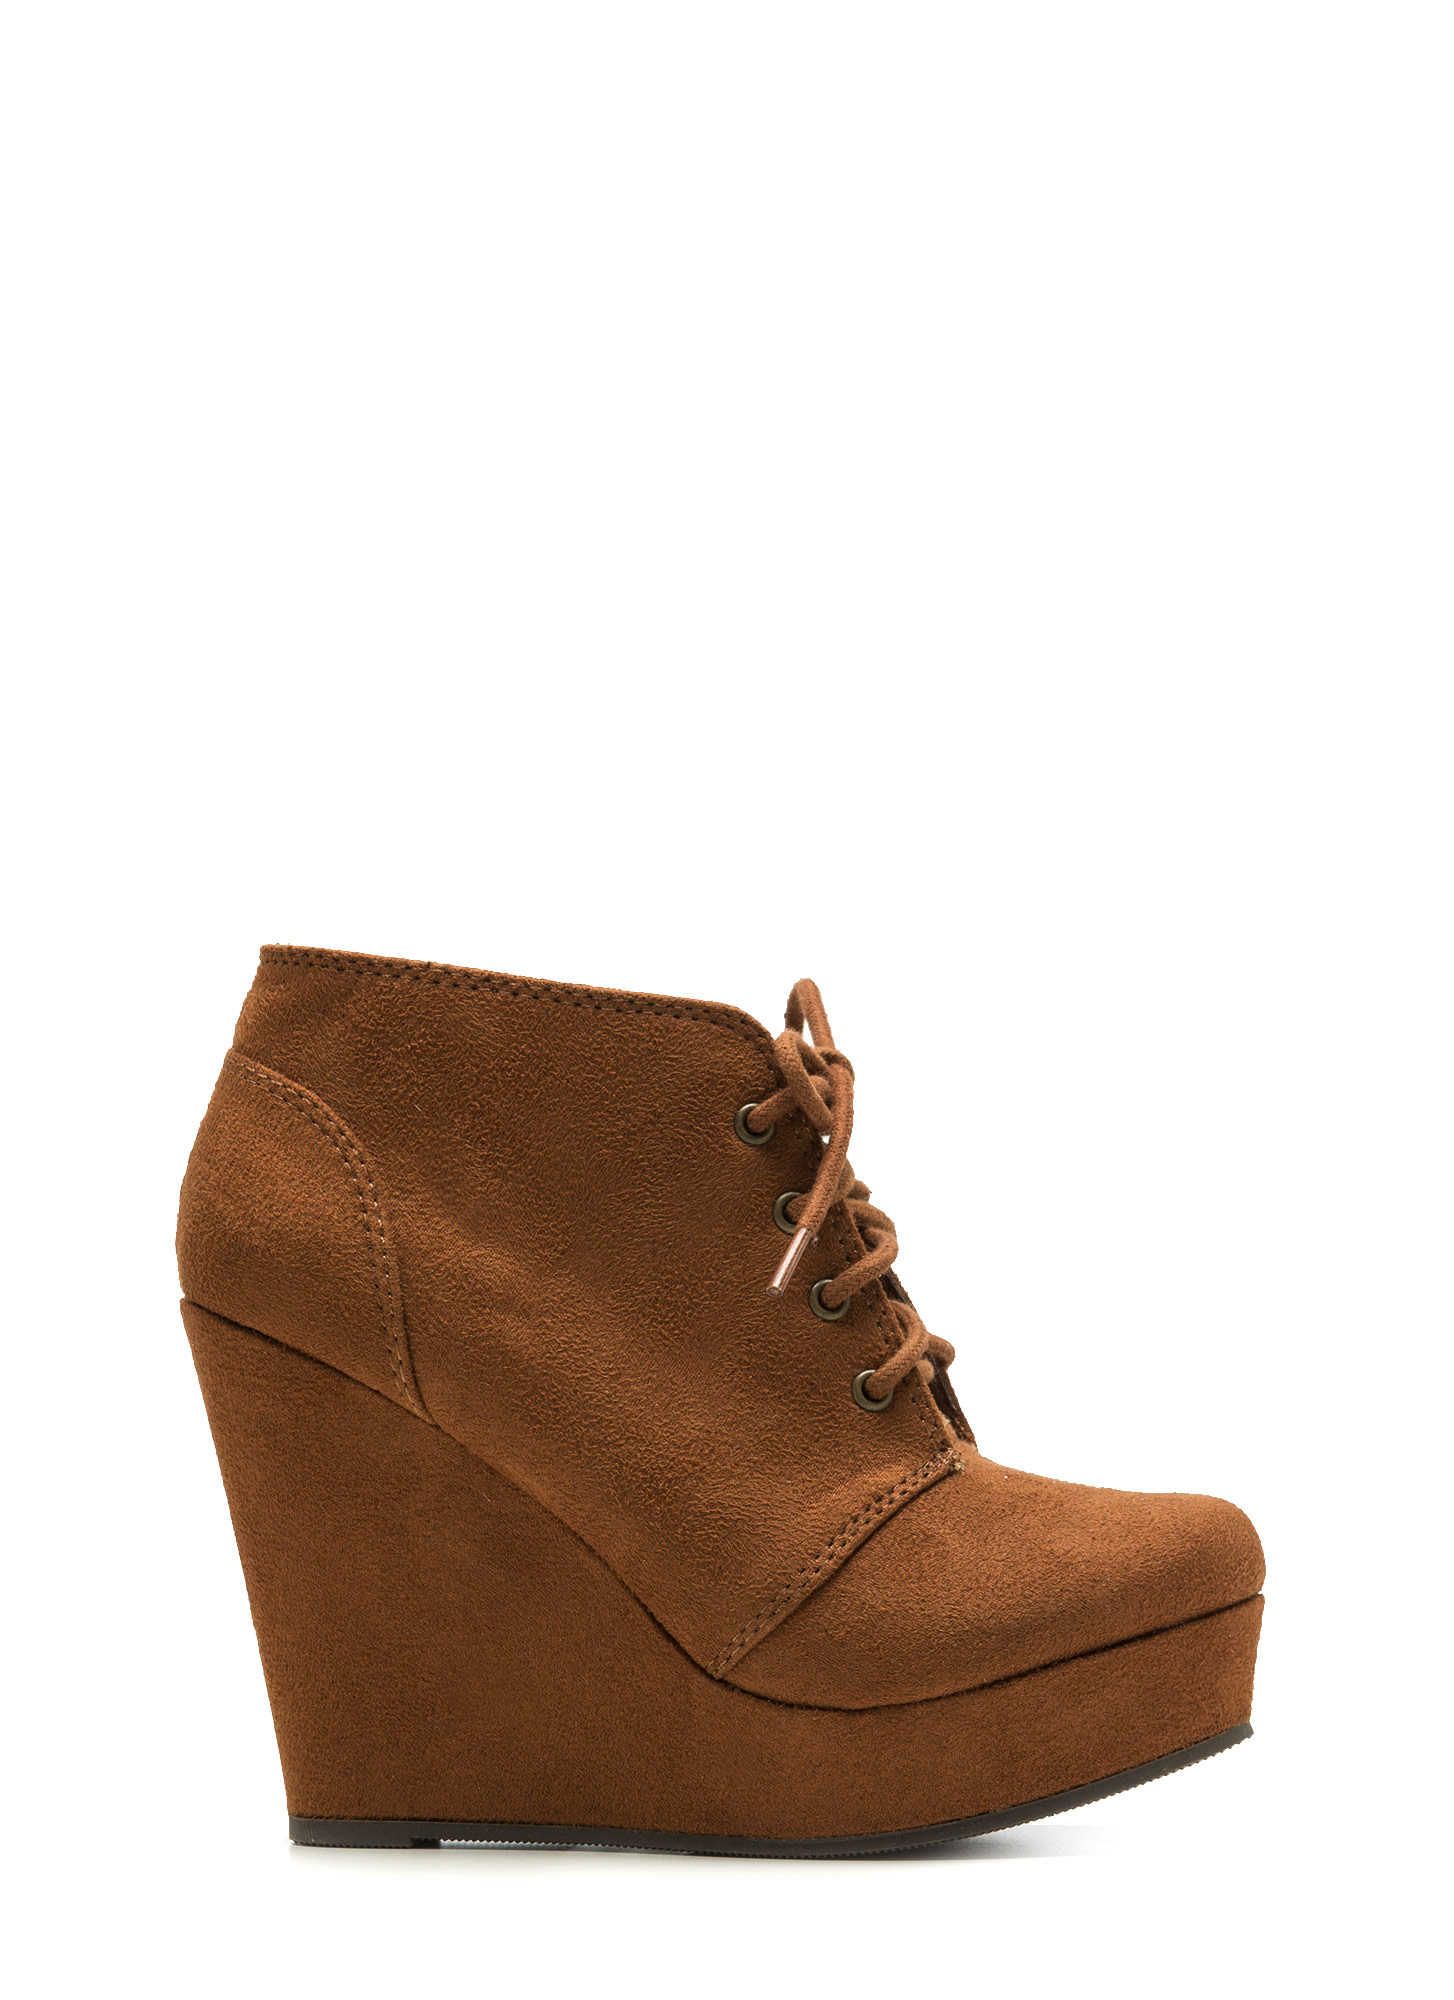 Faux Suede Platform Wedge Booties HAZELNUT